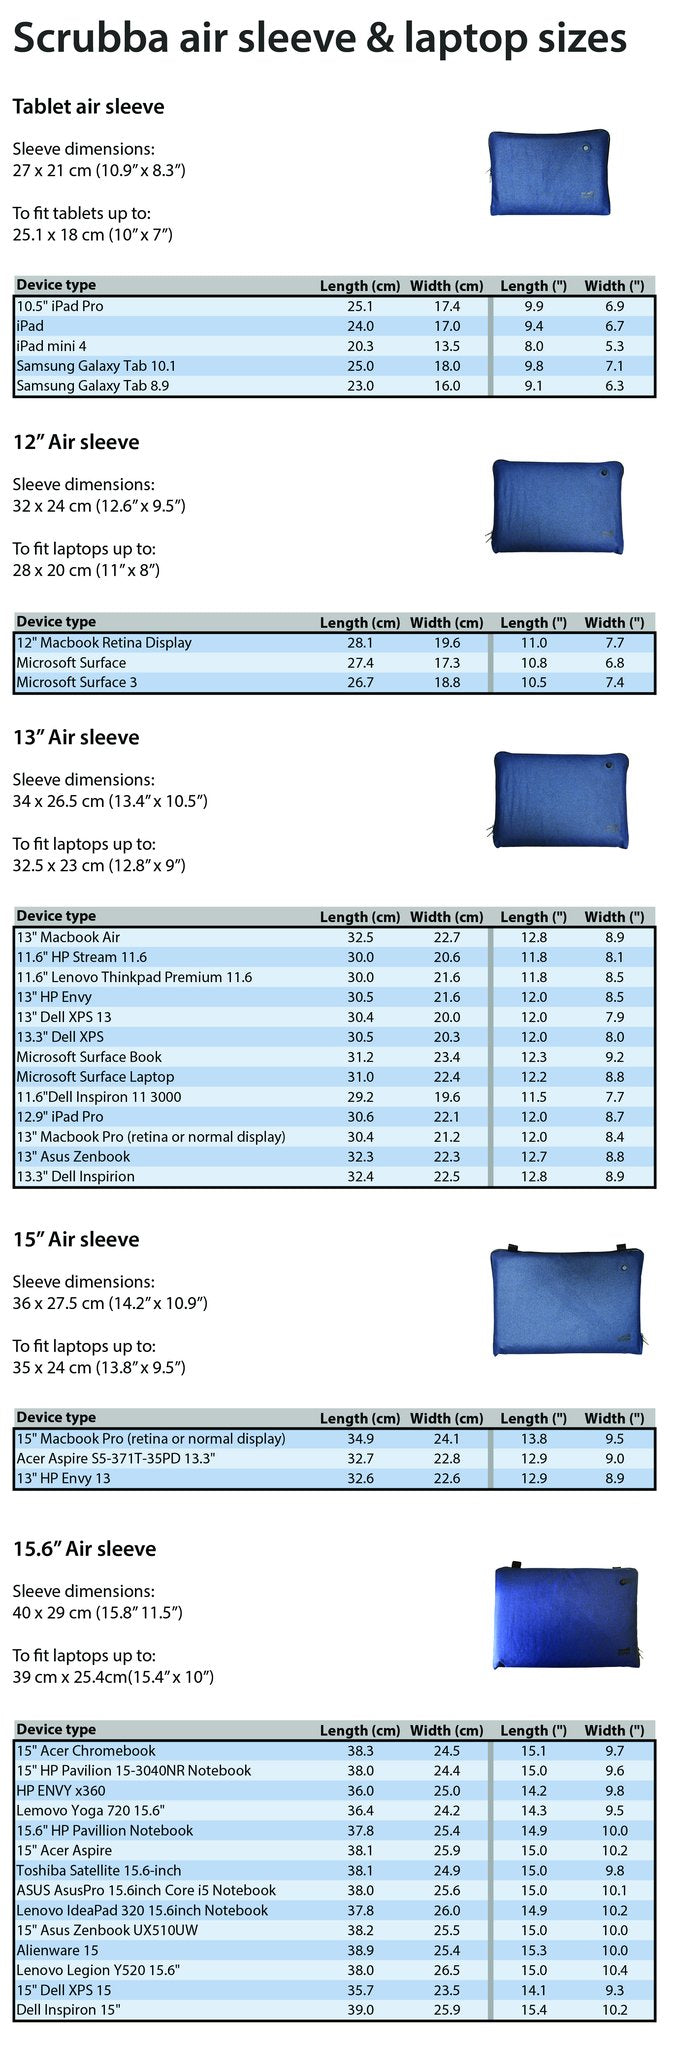 Scrubba Air Sleeve Size Comparison Table